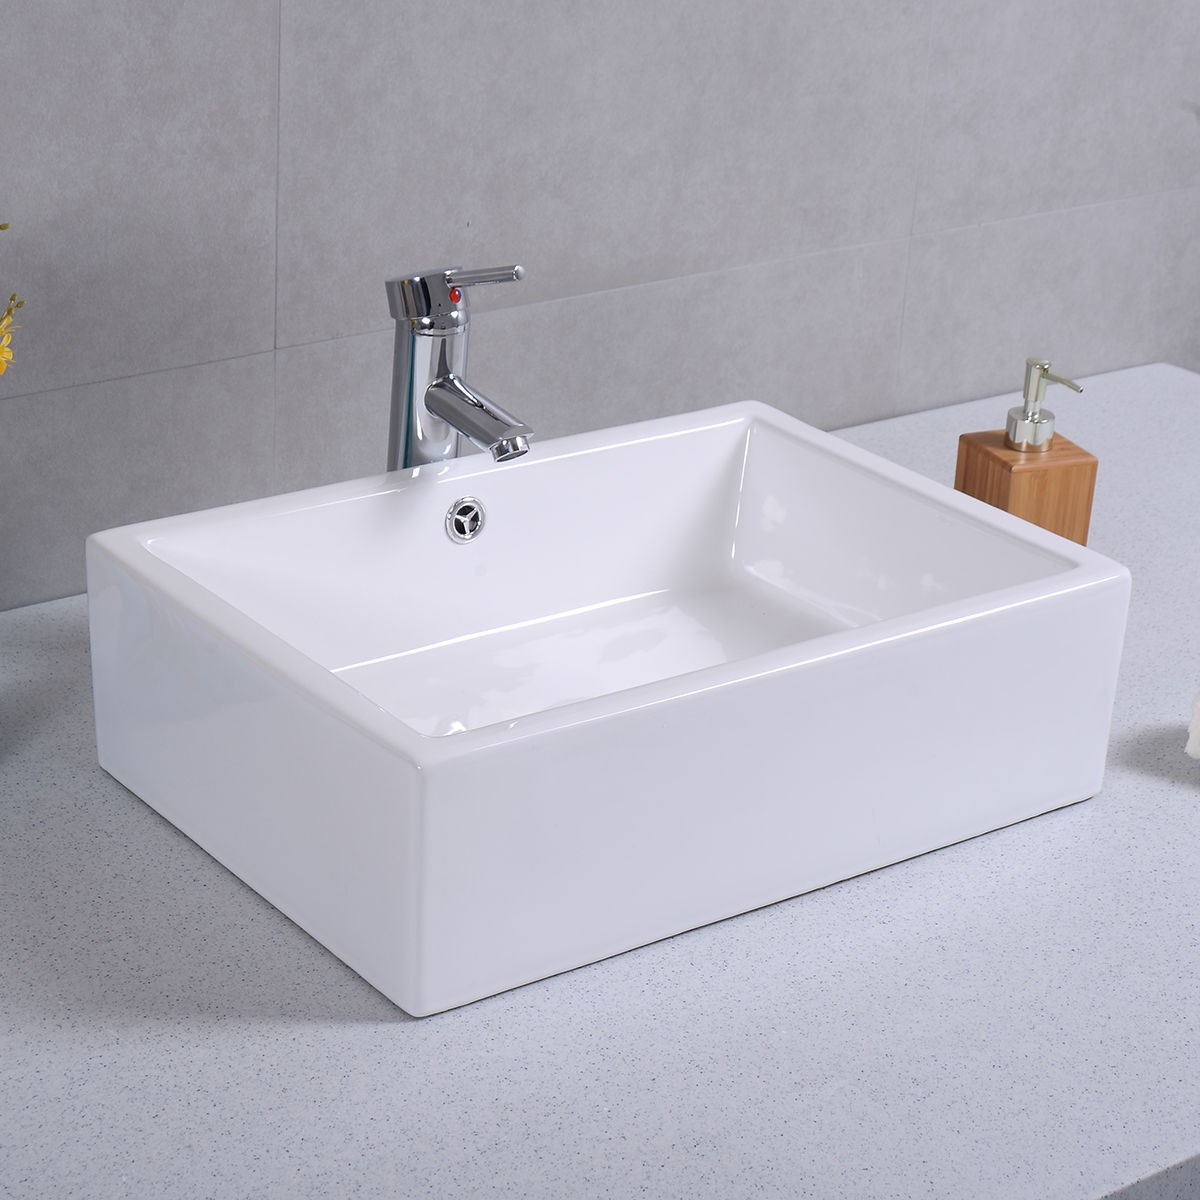 bathroom sink white 20 quot ceramic bathroom sink rectangle vessel bath deck mount 11456